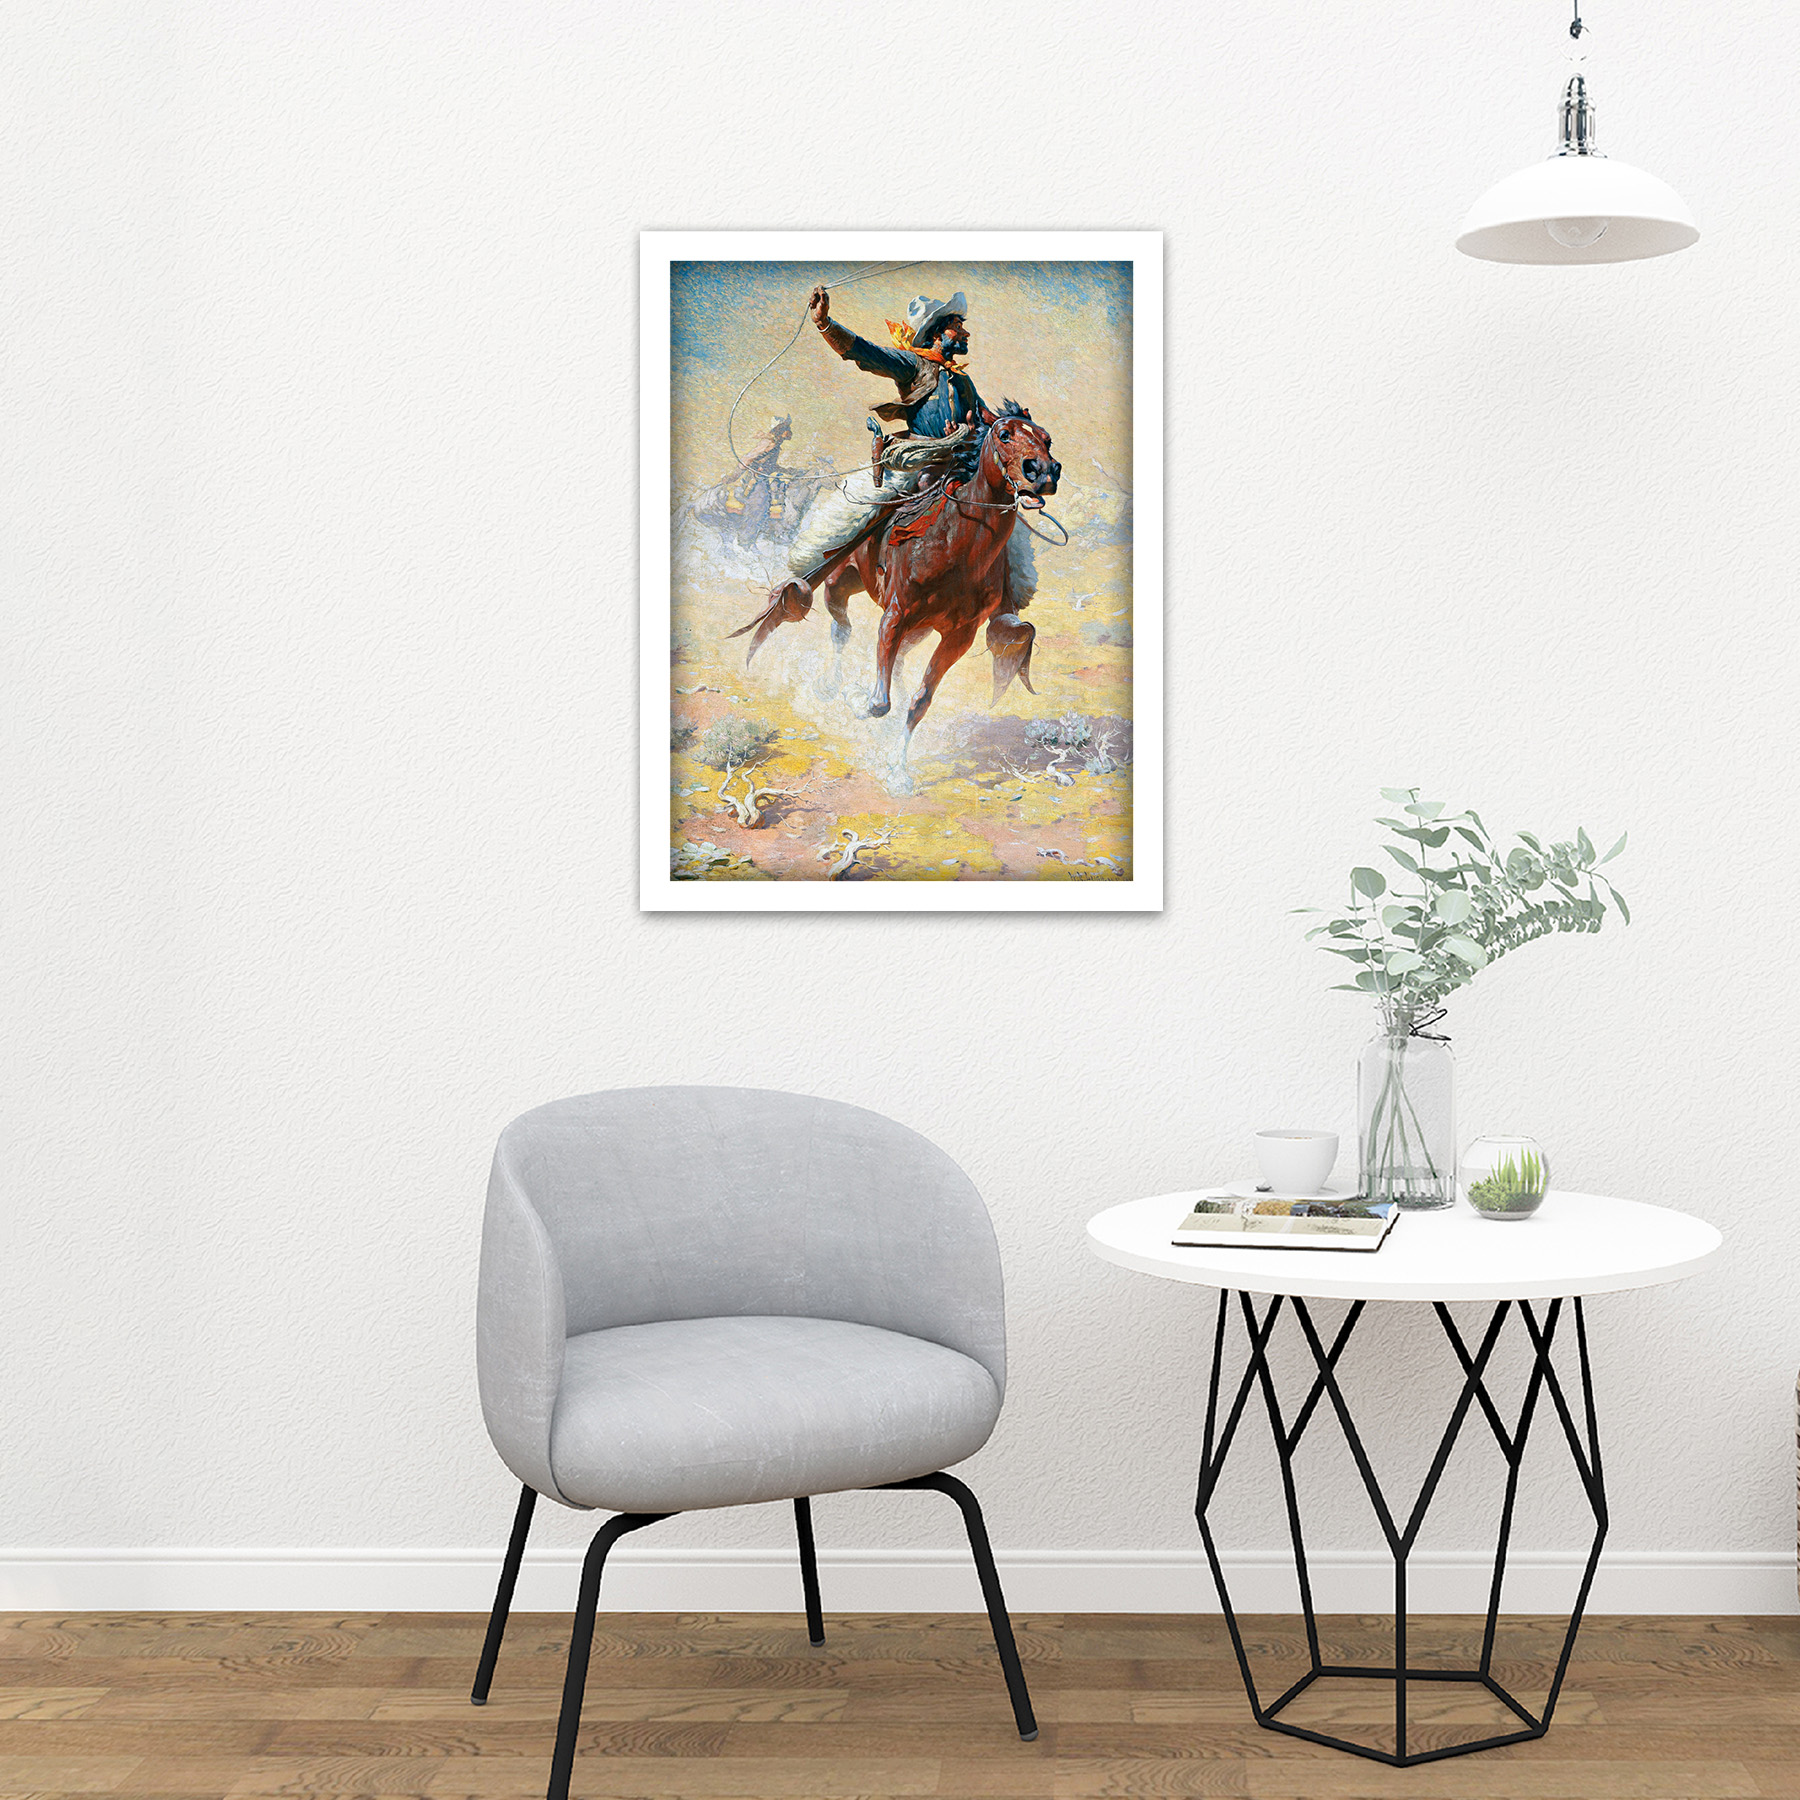 Leigh-The-Roping-Cowboy-Lasso-Horse-Painting-Large-Framed-Art-Print thumbnail 23